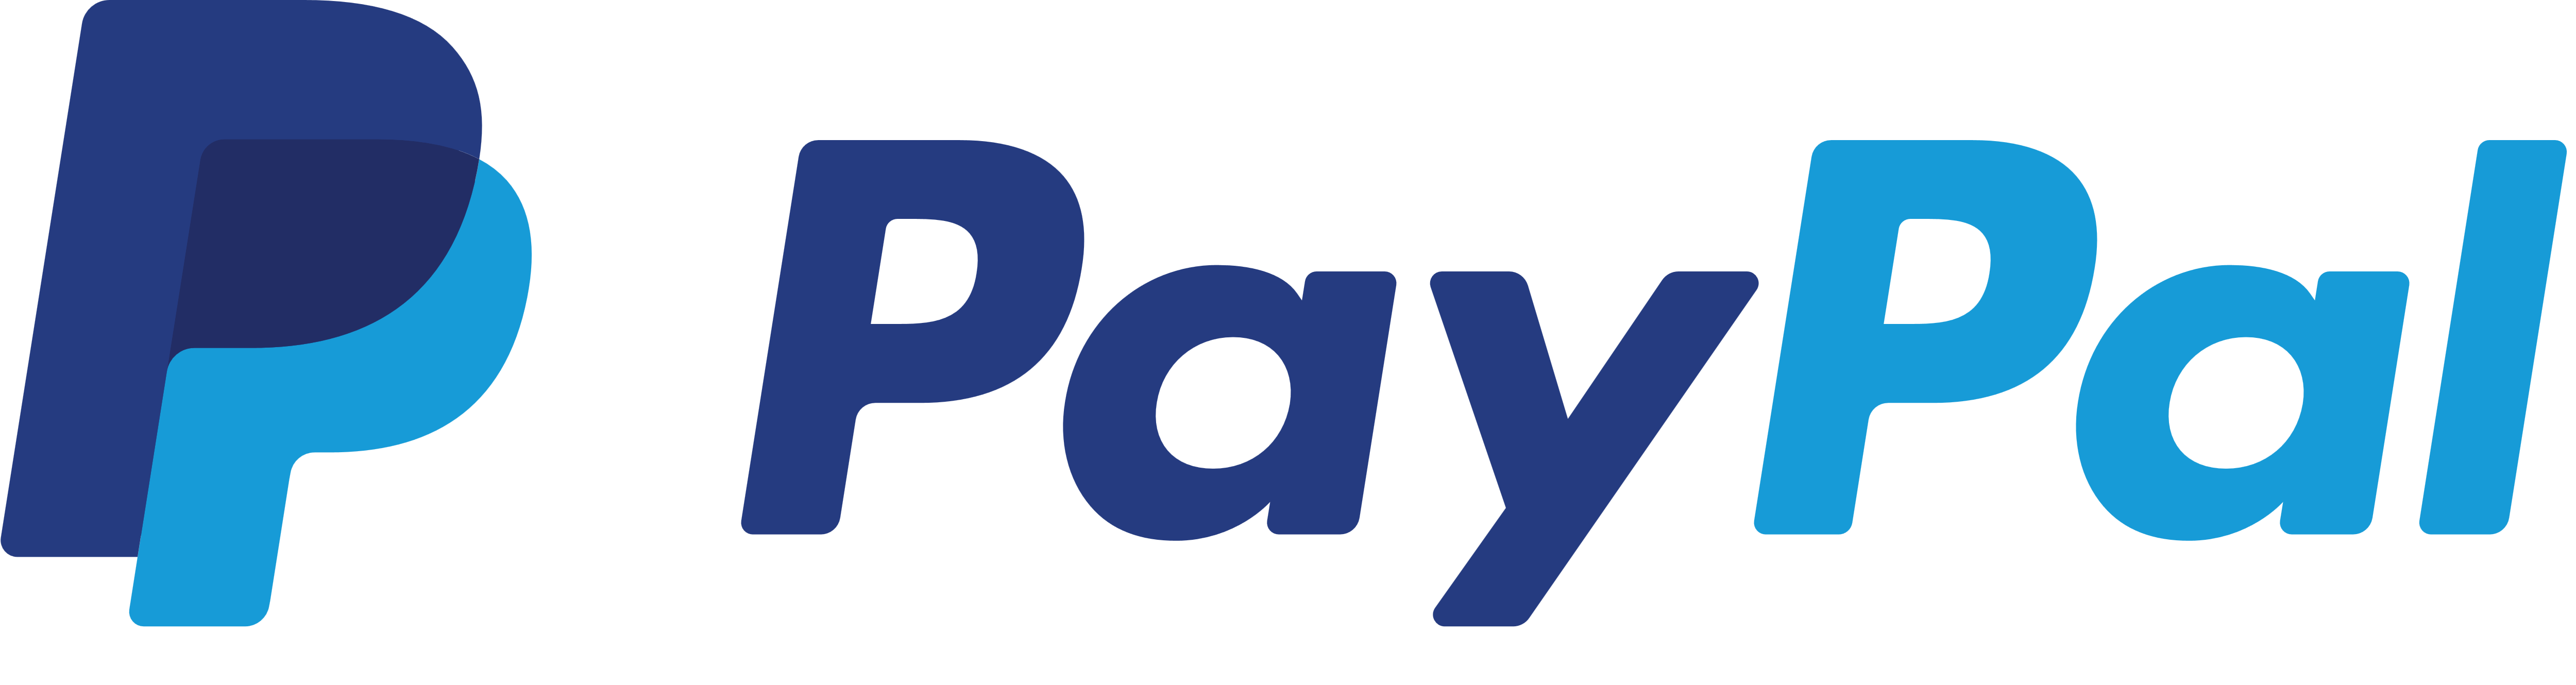 Doppellotte-paypal